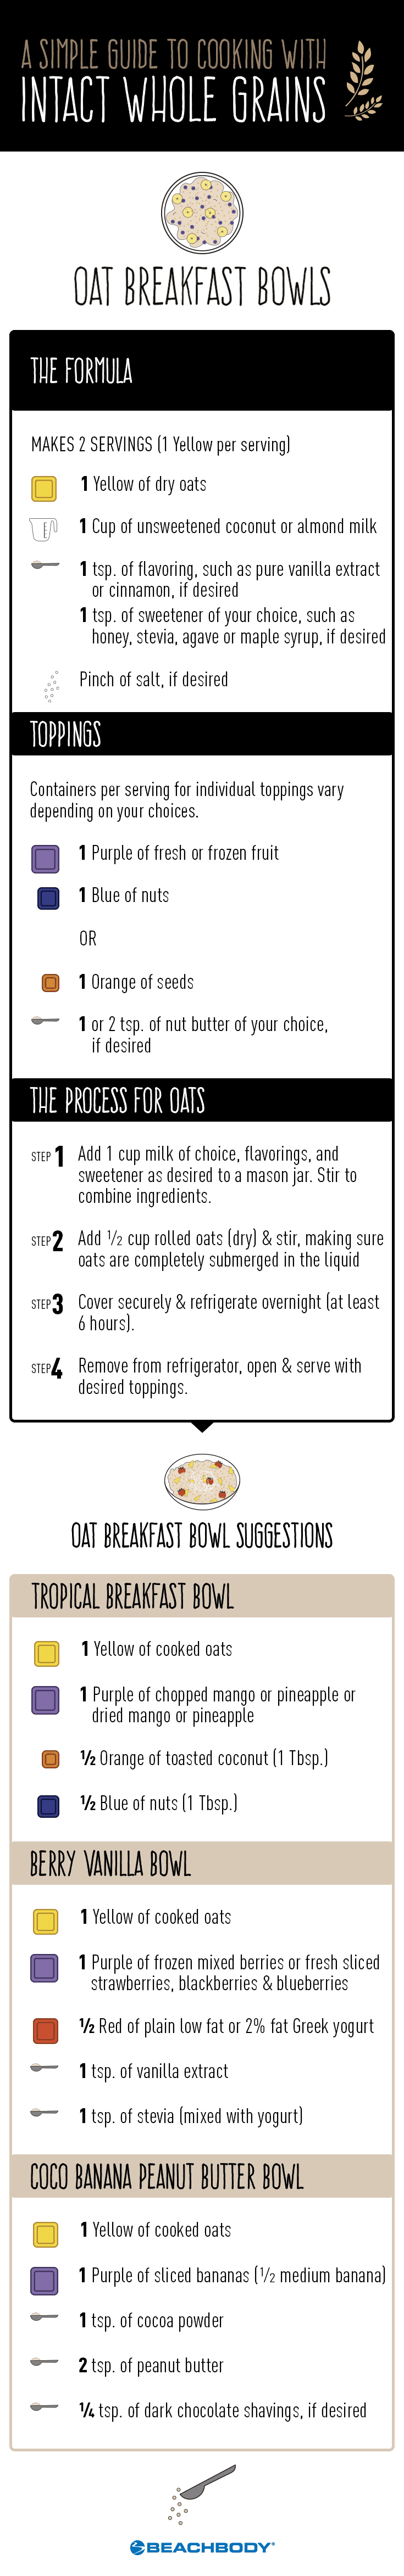 oat breakfast bowls